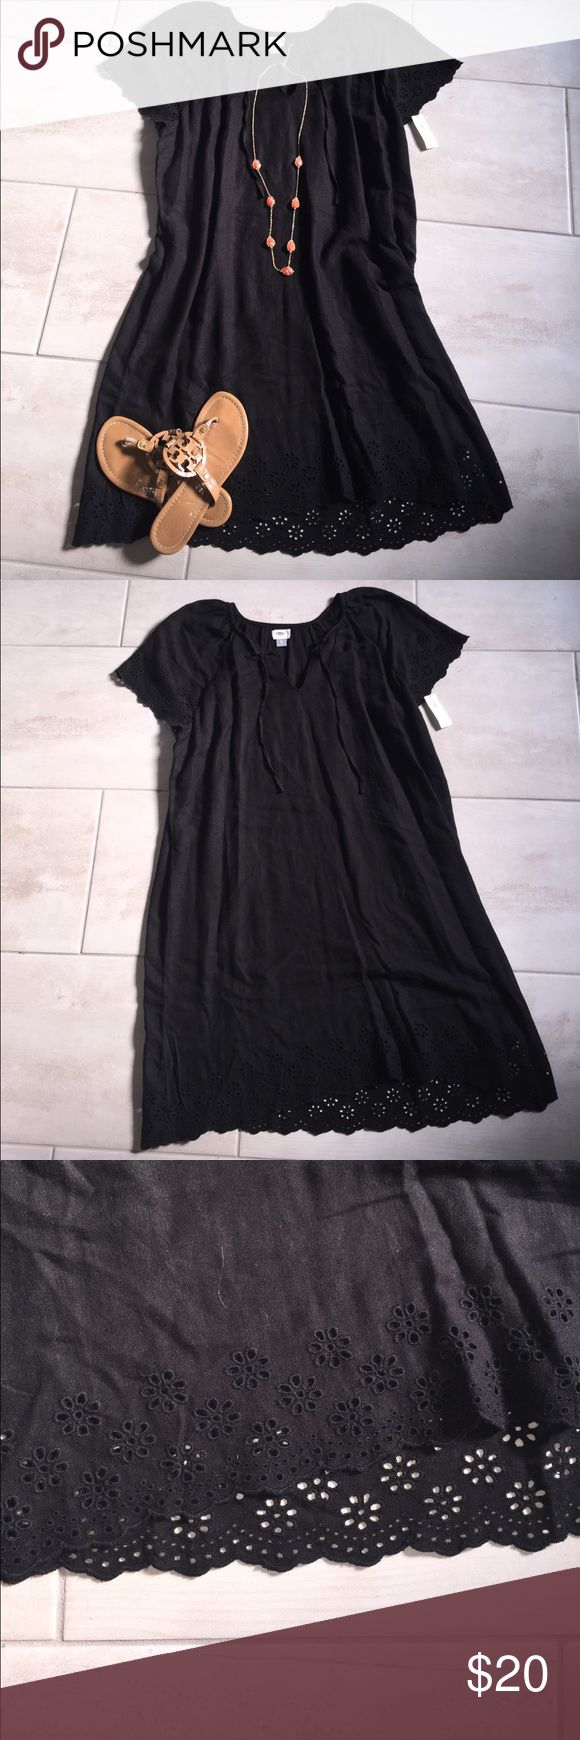 Old Navy Maternity Dress Black Old Navy Maternity Dress with lace trim on sleeves and bottom. NWT. Old Navy Dresses Mini